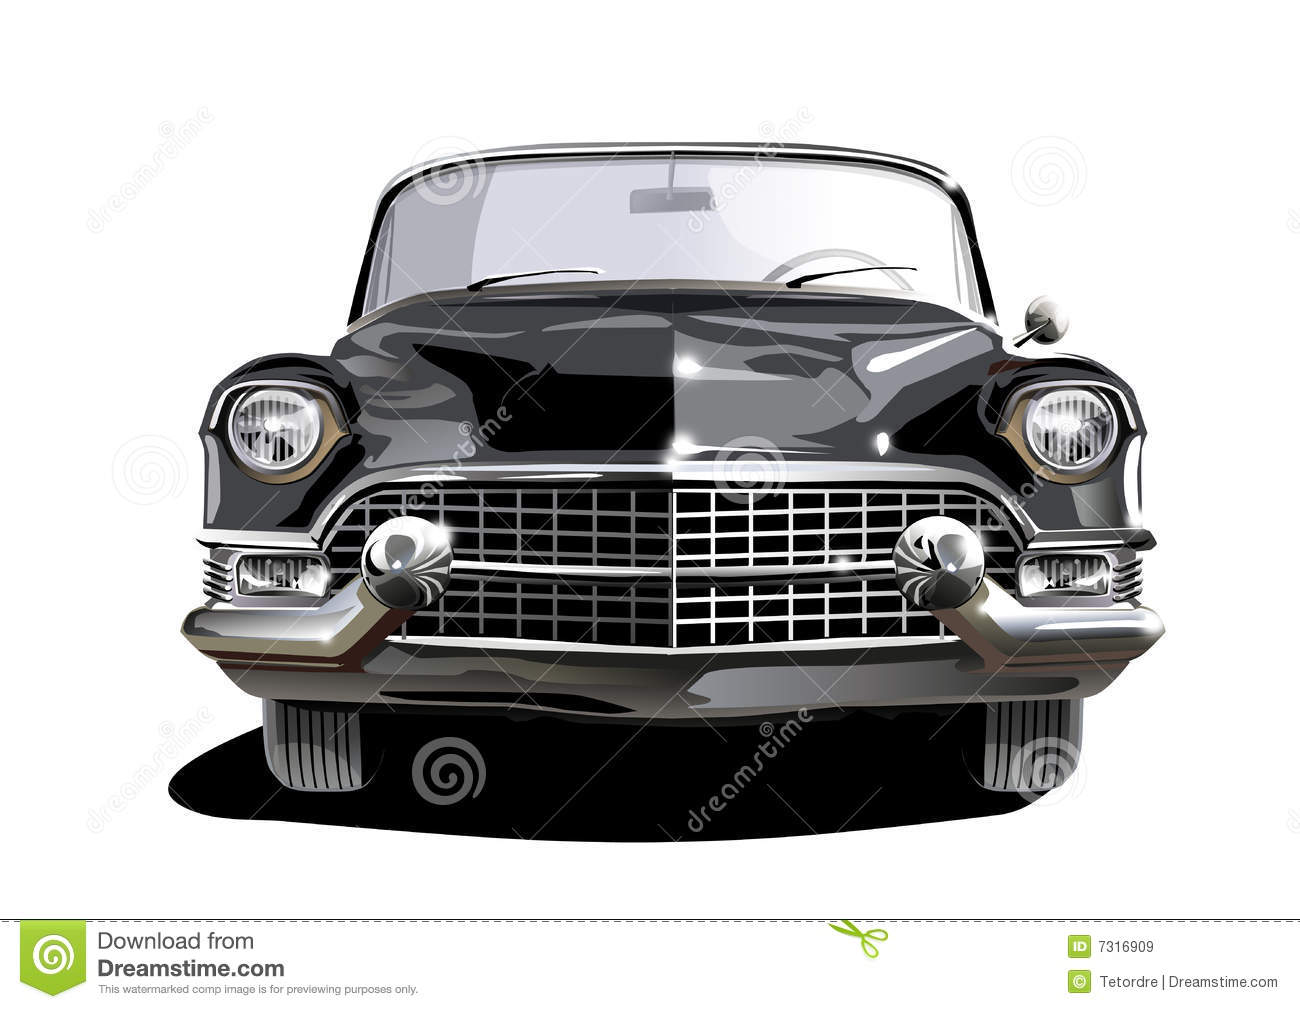 Black cadillac. Front view of a black classic cadillac Convertible Royalty  Free Stock Images